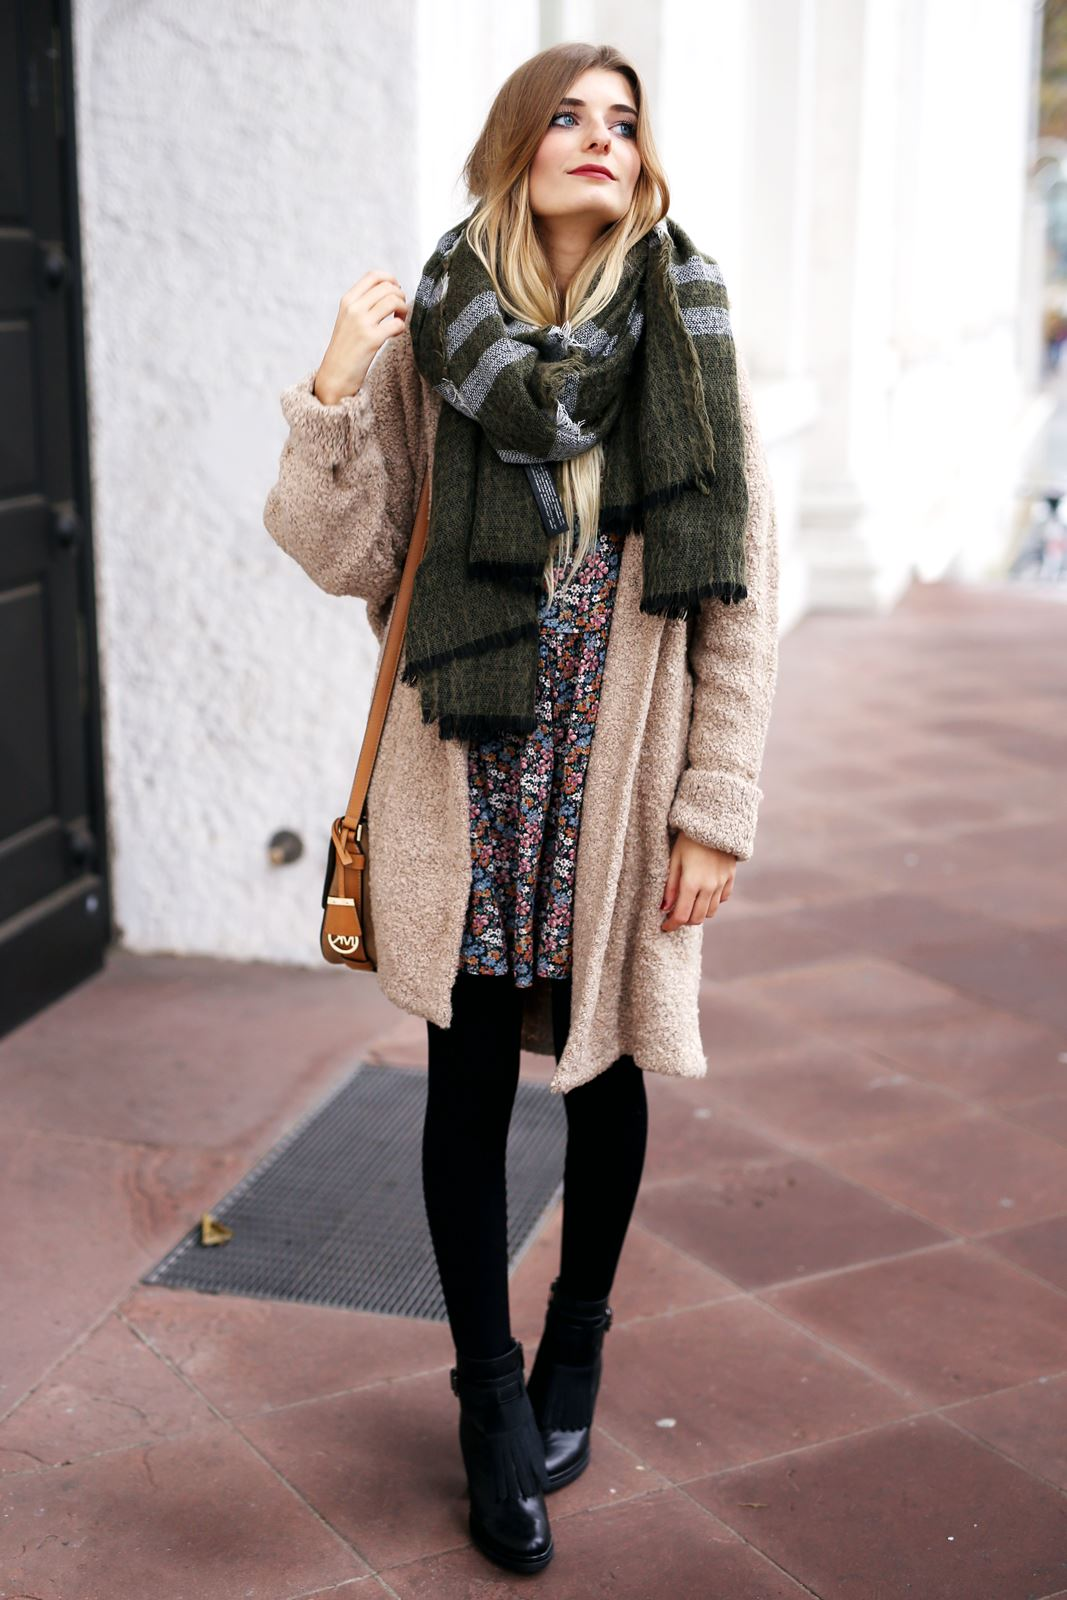 modeblog-fashion-blog-outfit-herbst-mantel-michael-kors-tasche-3